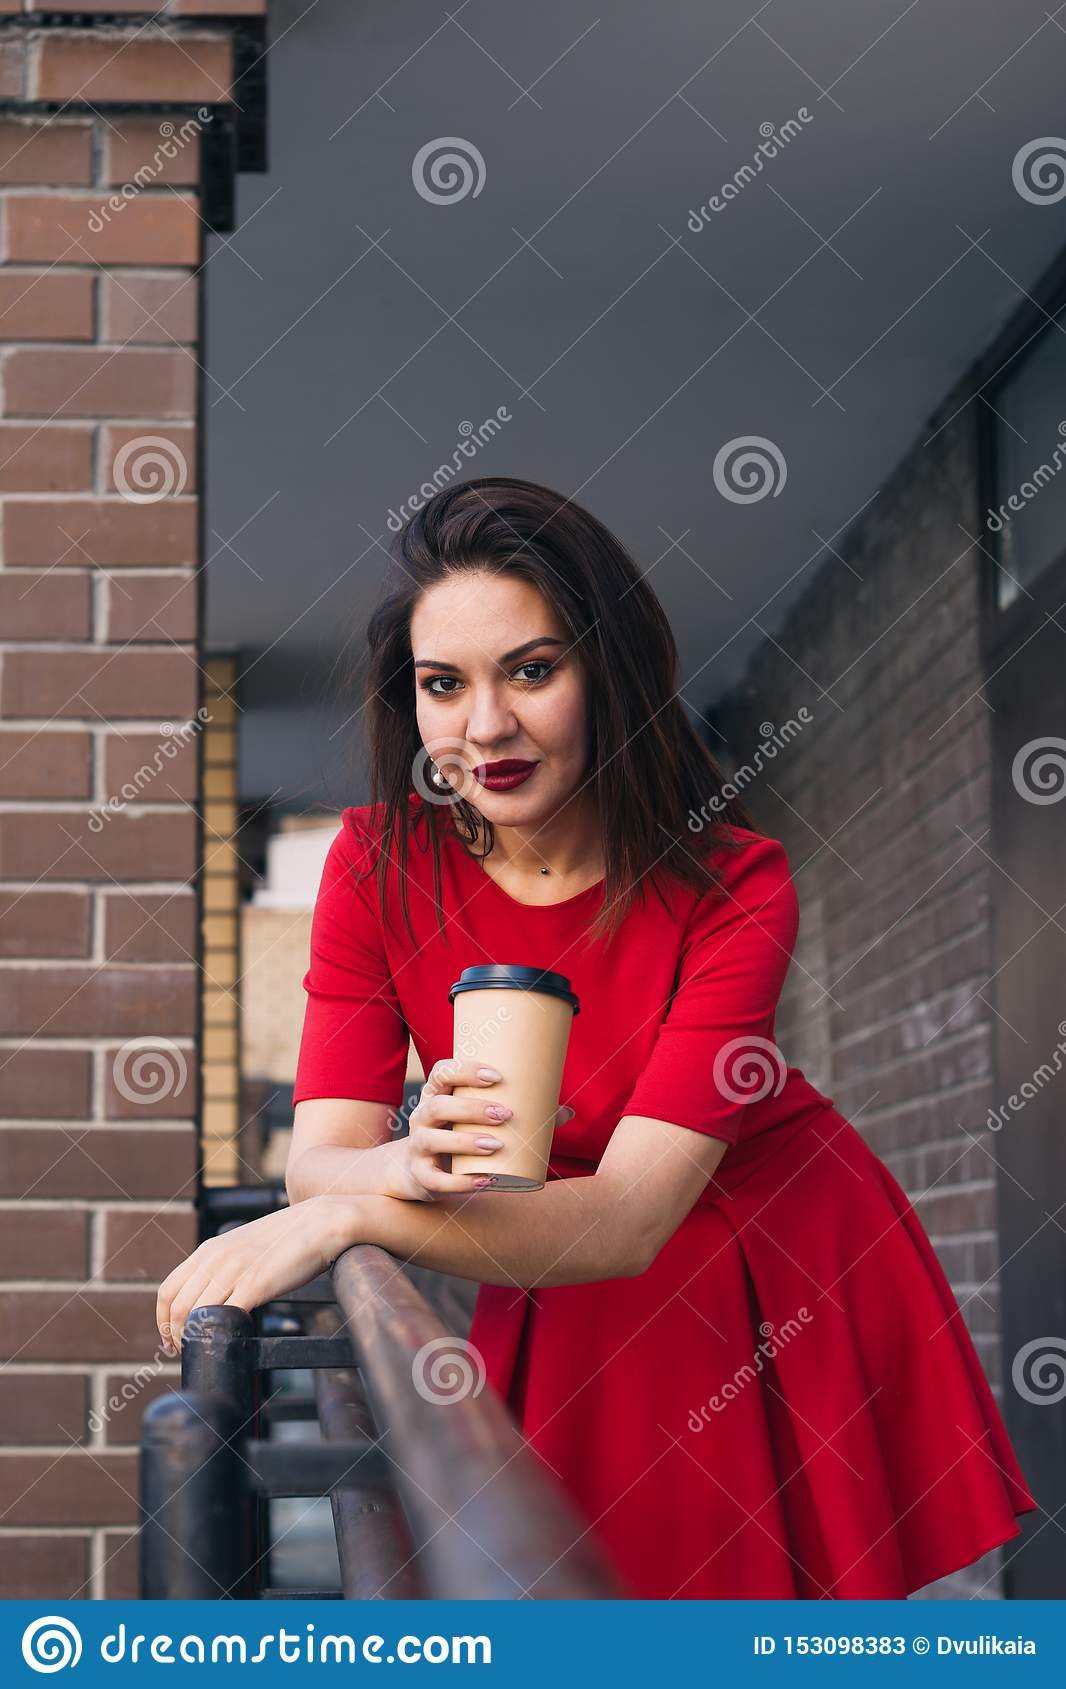 beautiful young woman with red lipstick in red dress holding takeaway cup of drink on the street